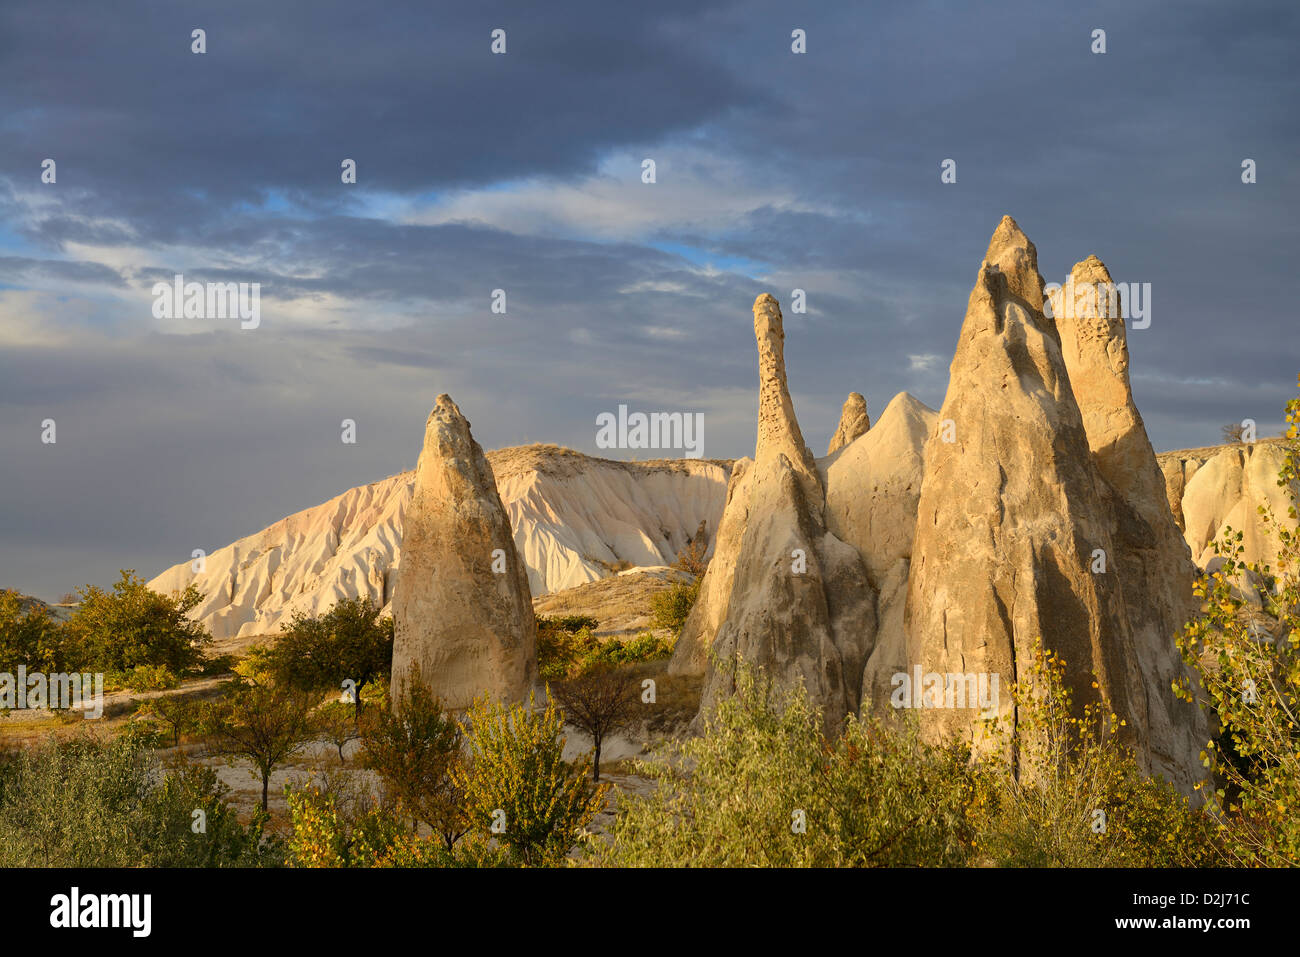 Evening sun on eroded rock spires of the Red Valley Cappadocia Nevsehir Turkey - Stock Image